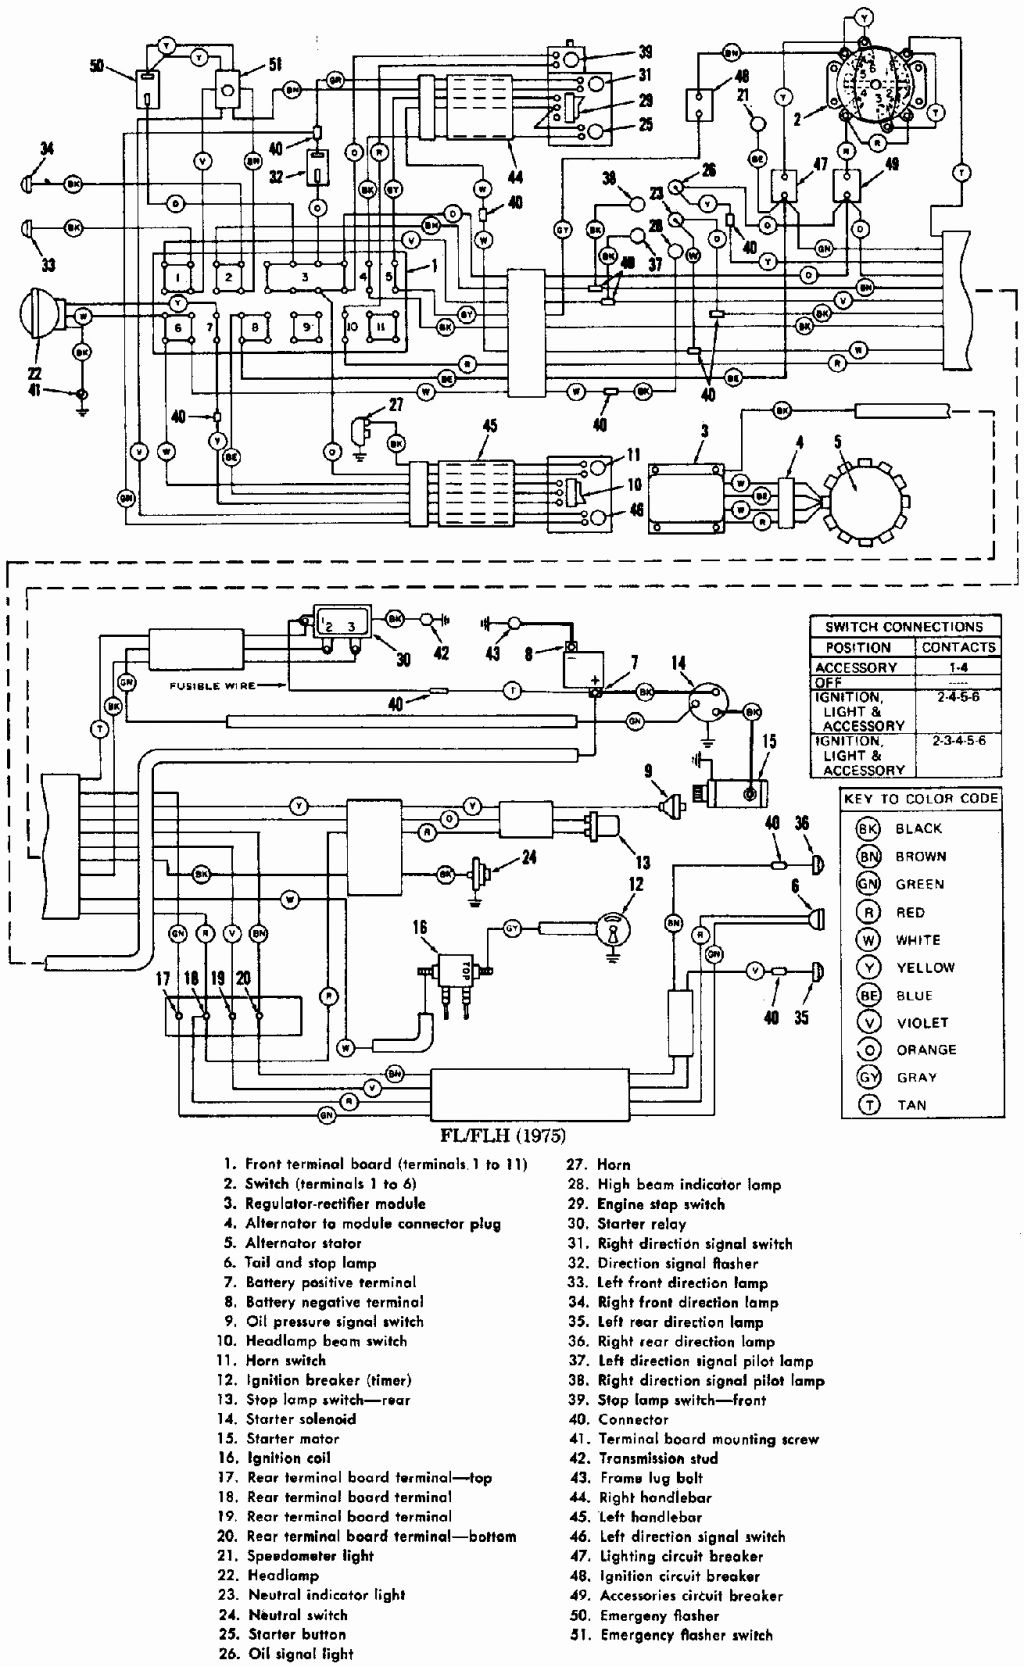 Wiring Diagram Database: Harley Davidson Tail Light Wiring